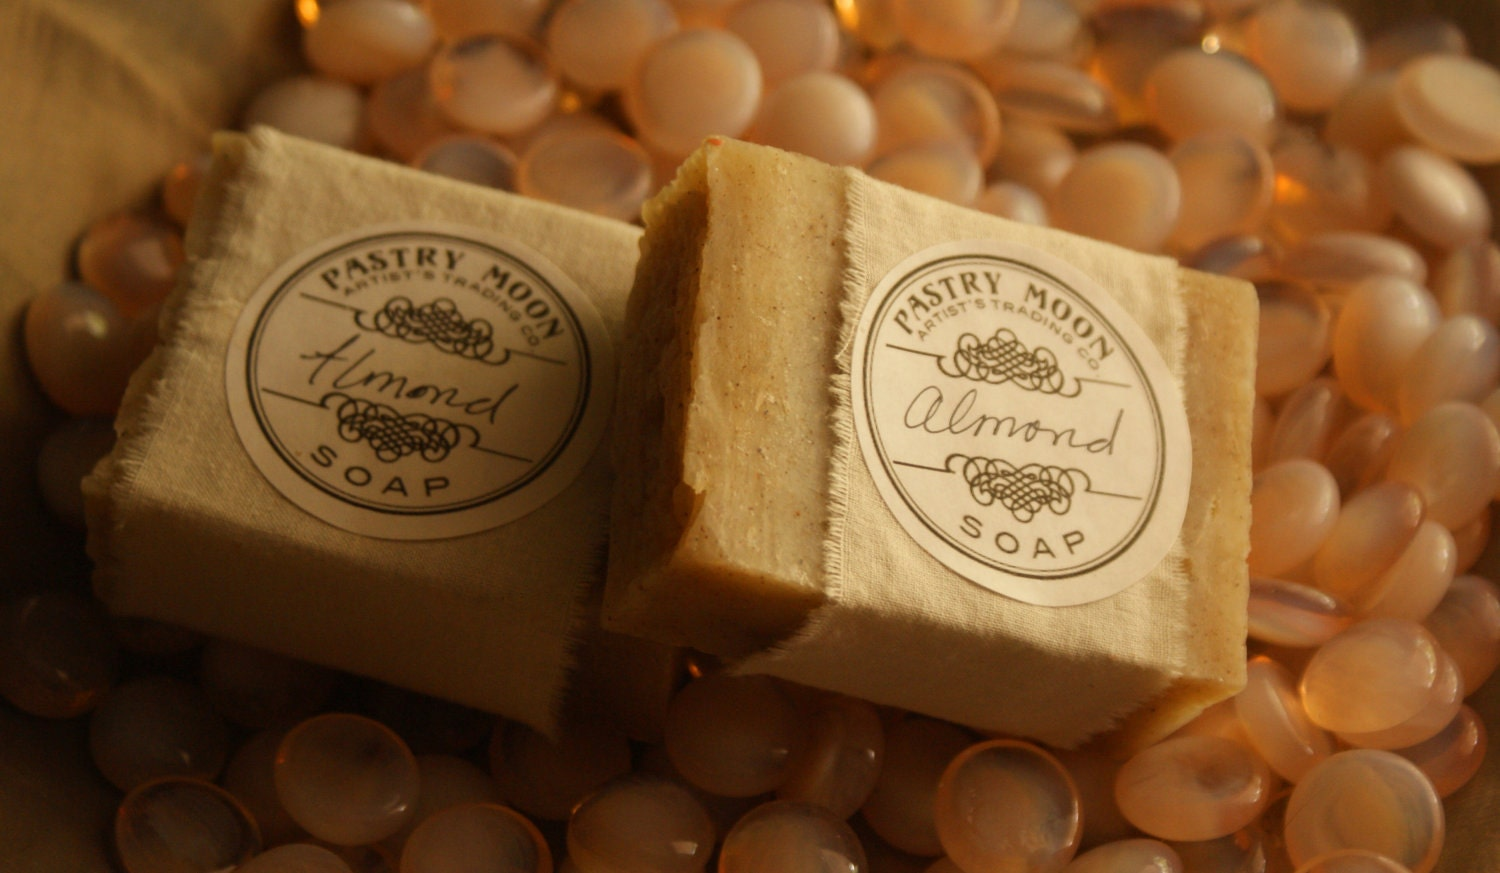 Almond Vegan Soap